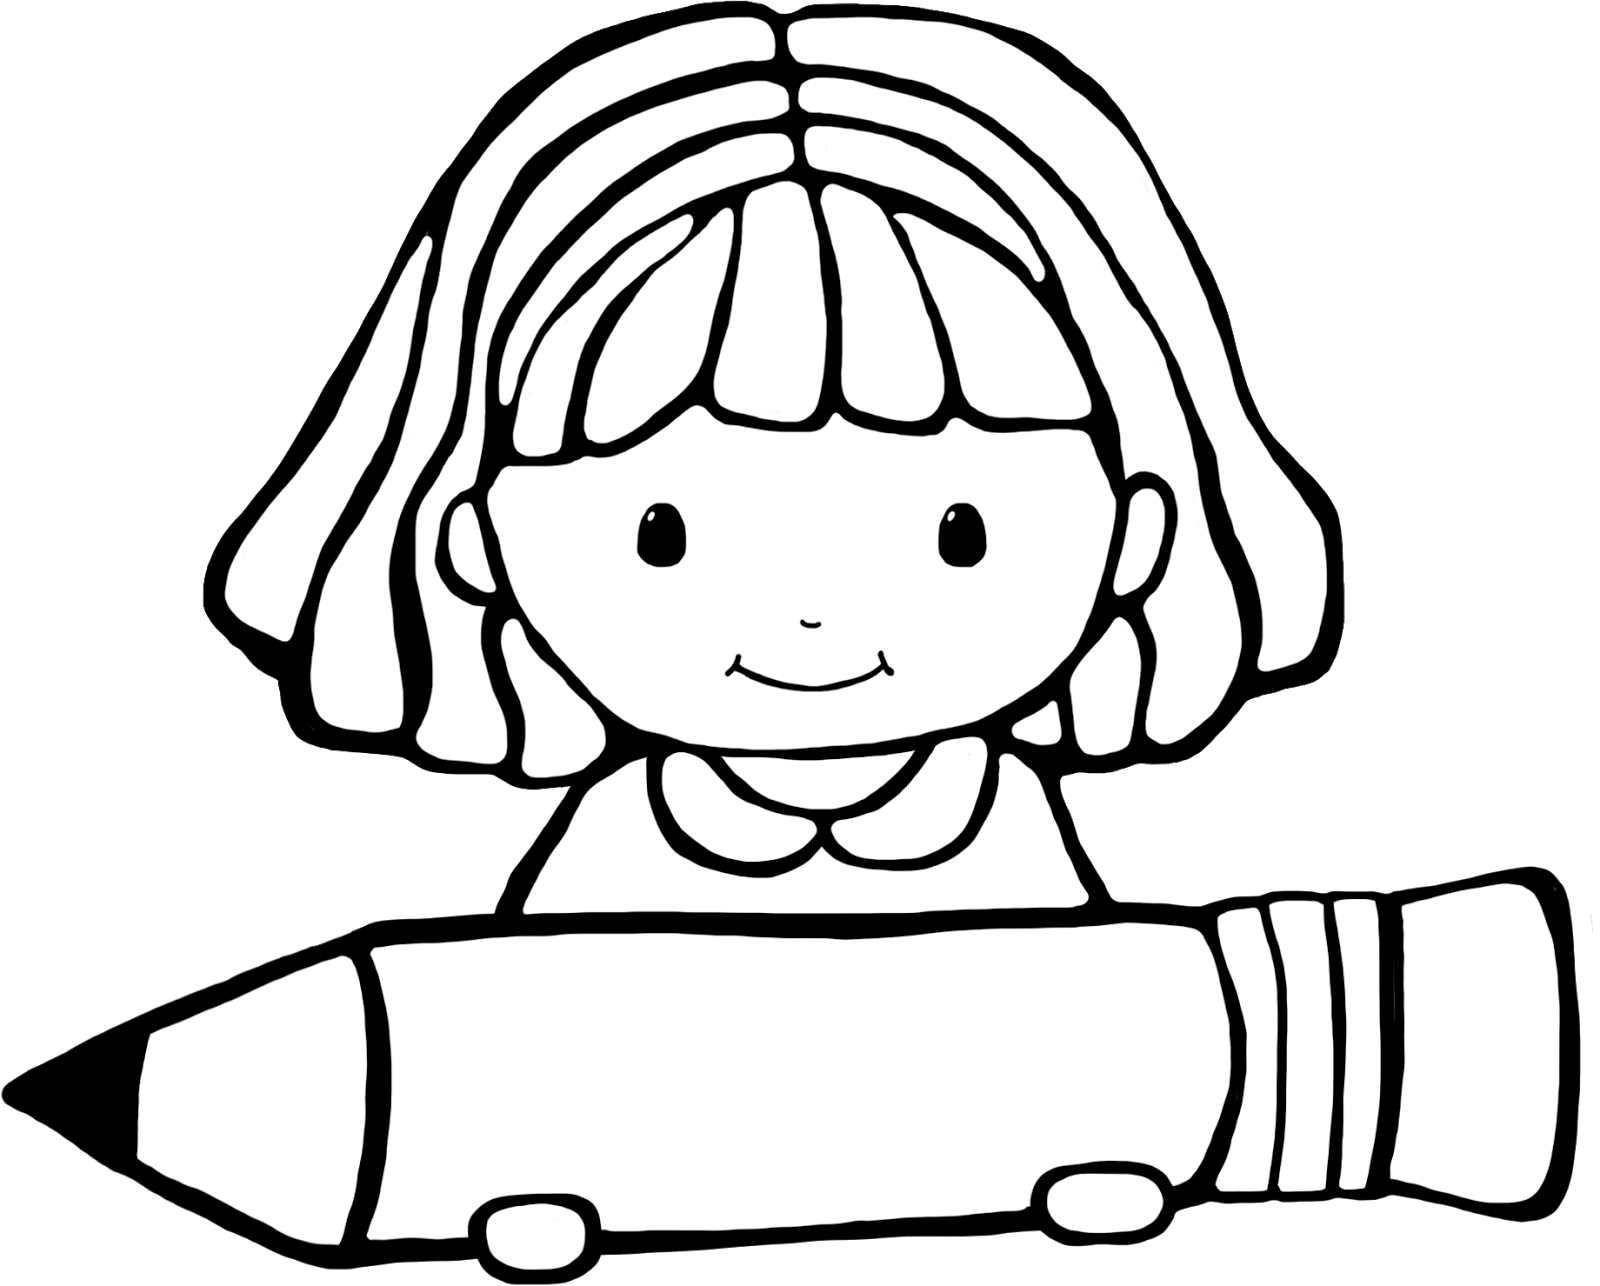 Girl pumpkin face clipart vector free library Girl Clipart Black And White | Free download best Girl Clipart Black ... vector free library